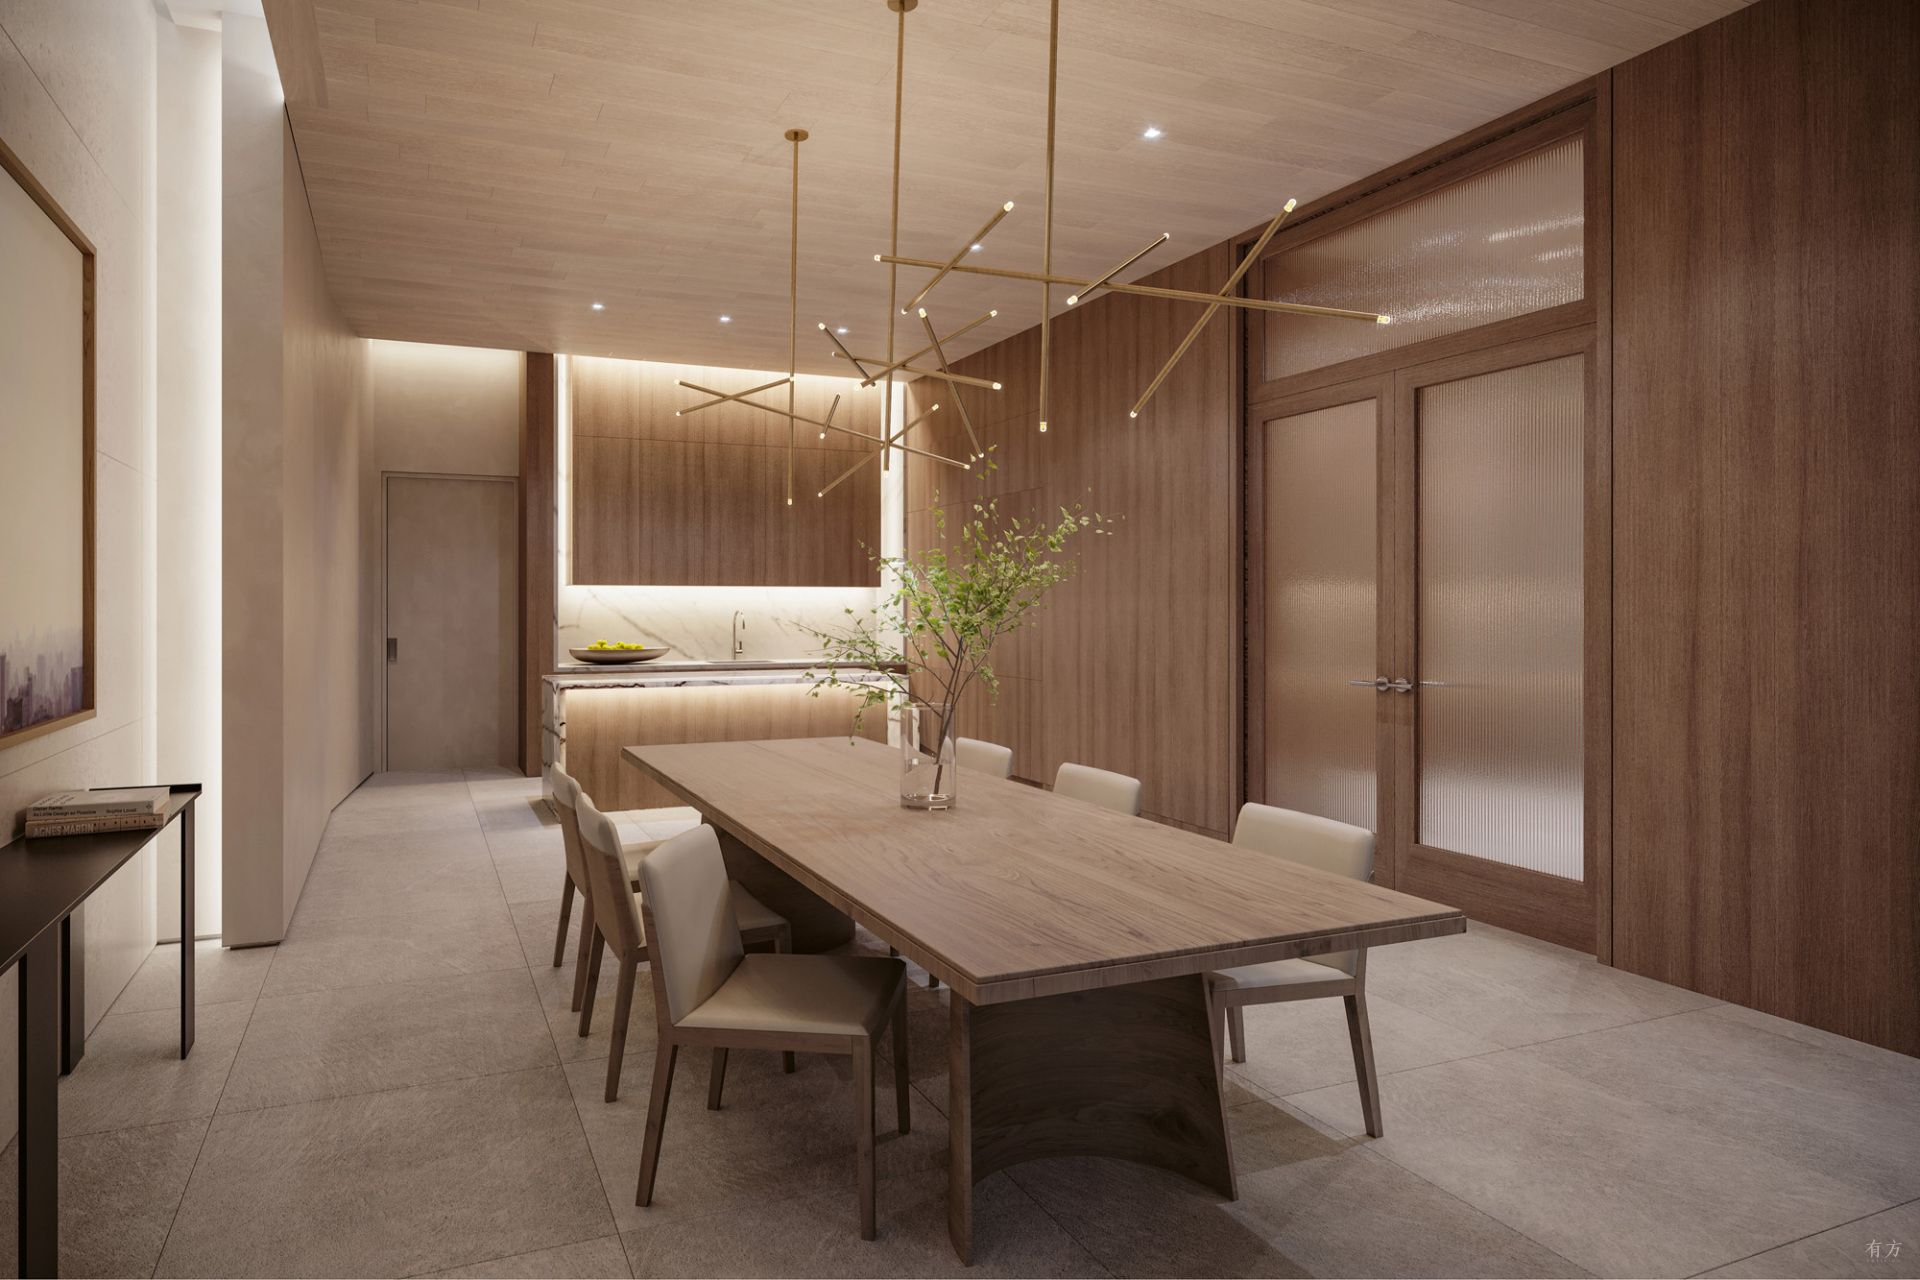 Pin by lamourx on 临时 in 2020 Oak plank floor, Interior